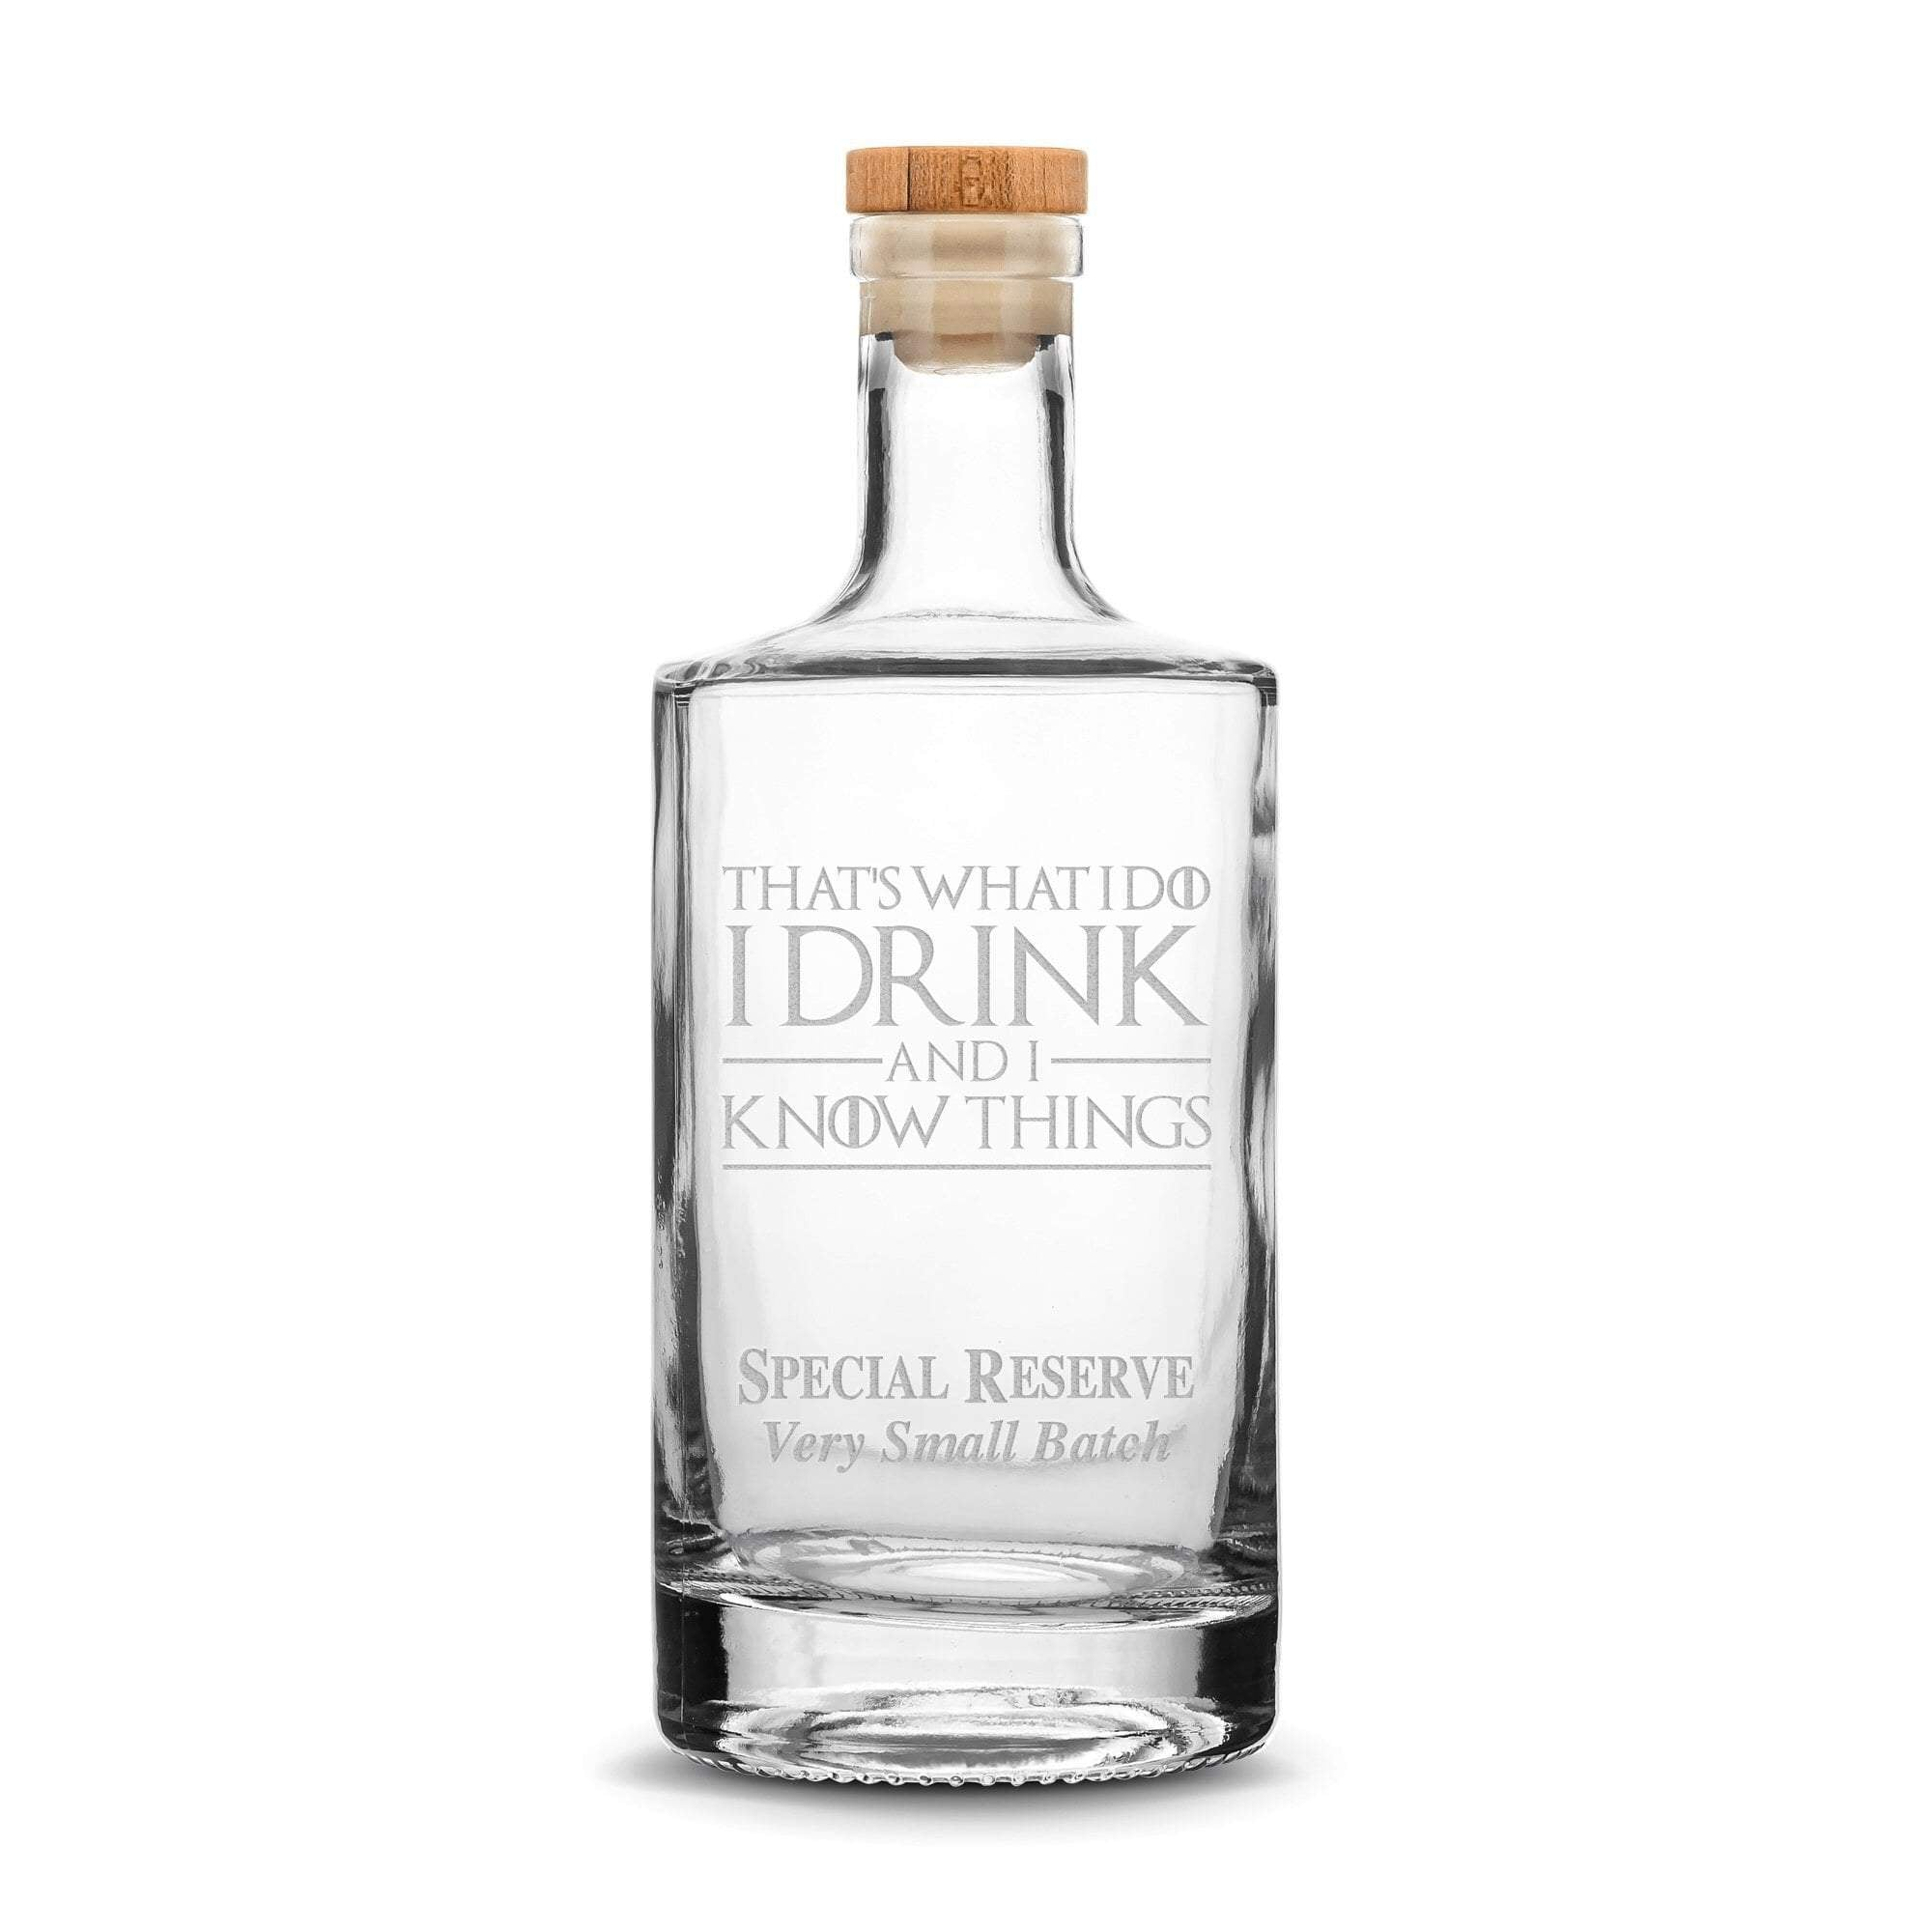 Premium Refillable Jersey Bottle, Game of Thrones, I Drink and I Know Things, 750mL Integrity Bottles